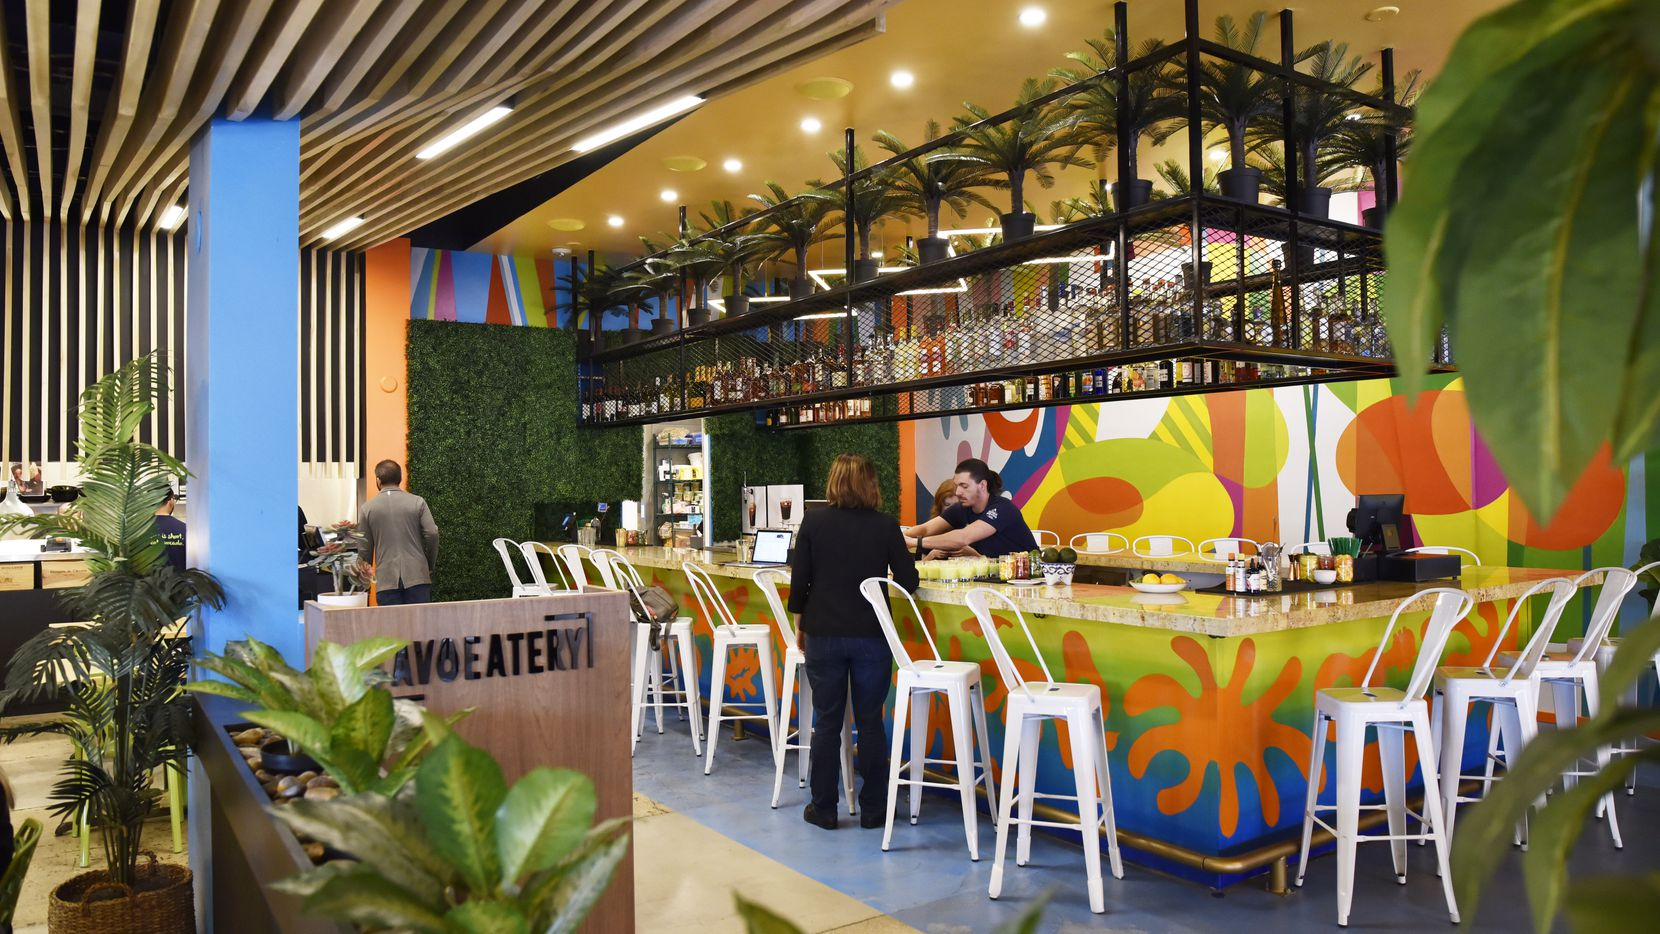 Avocados From Mexico is behind AvoEatery, an avocado-centric restaurant in Dallas' Trinity Groves.